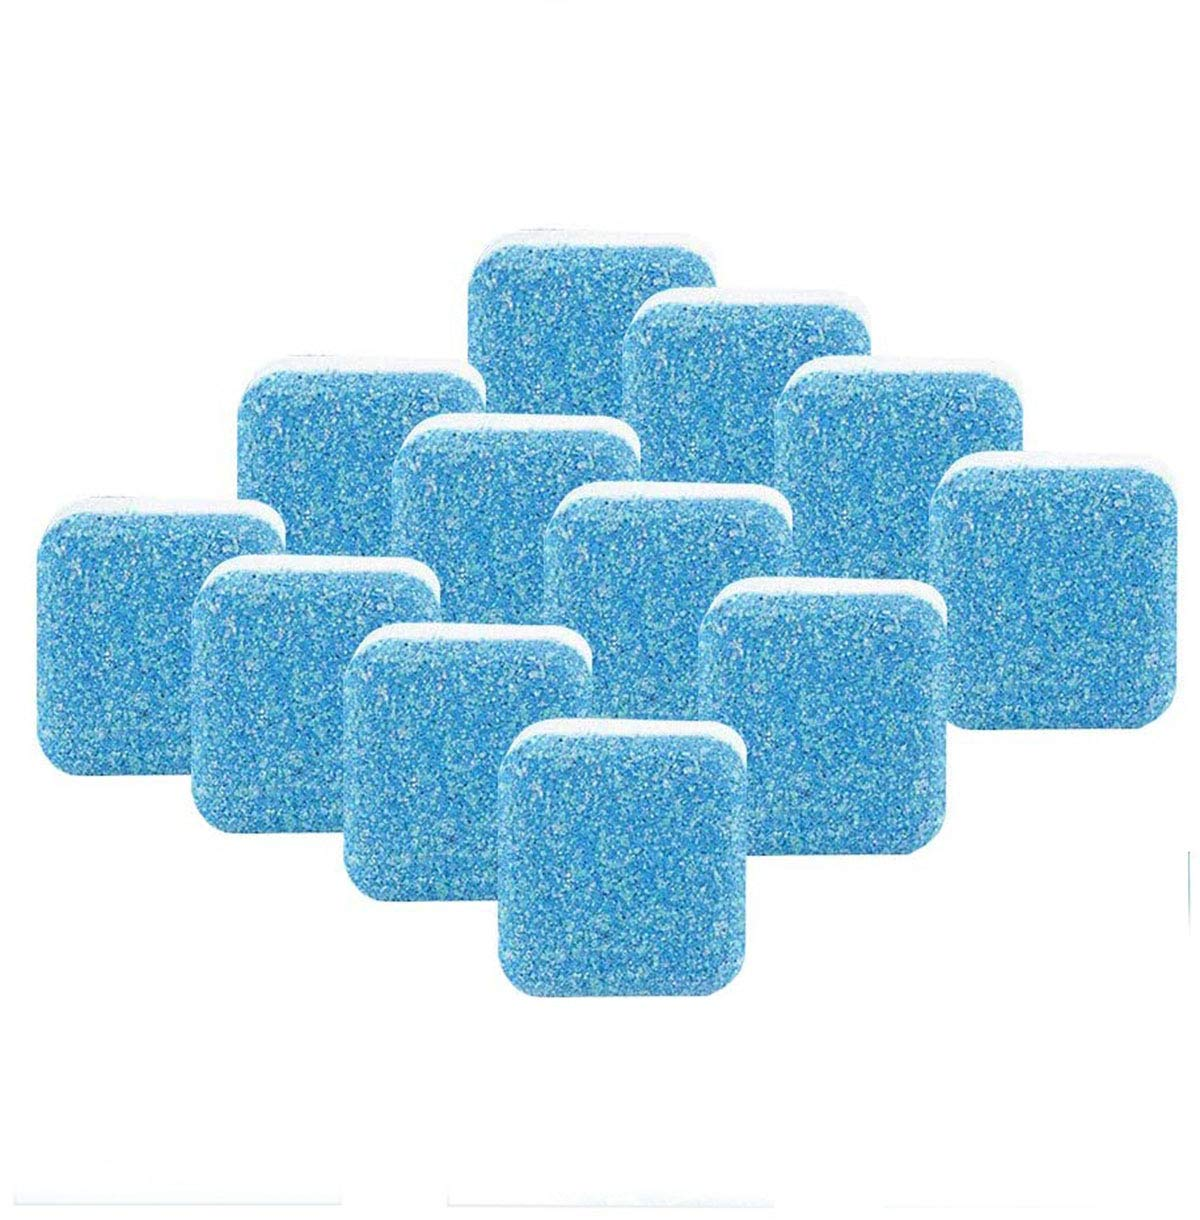 Effervescent Tablet Washer Cleaner,Solid Washing Machine Cleaner,Deep Cleaning Remover with Triple Decontamination for Bath Room Kitchen (12pcs)